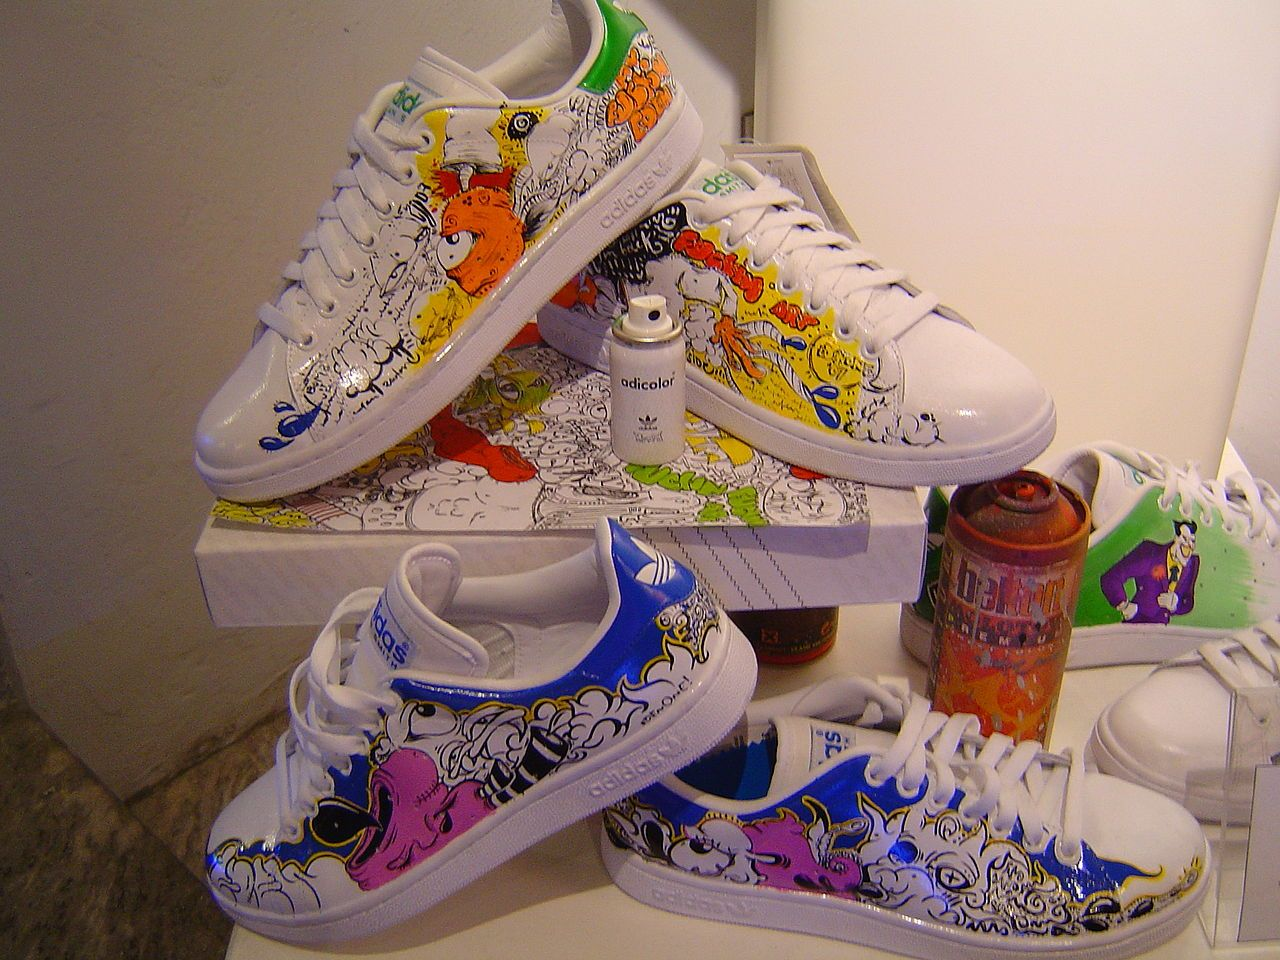 Pin by Ayanna Green on Sneakers | Shoes, Sneakers, Tennis shoes